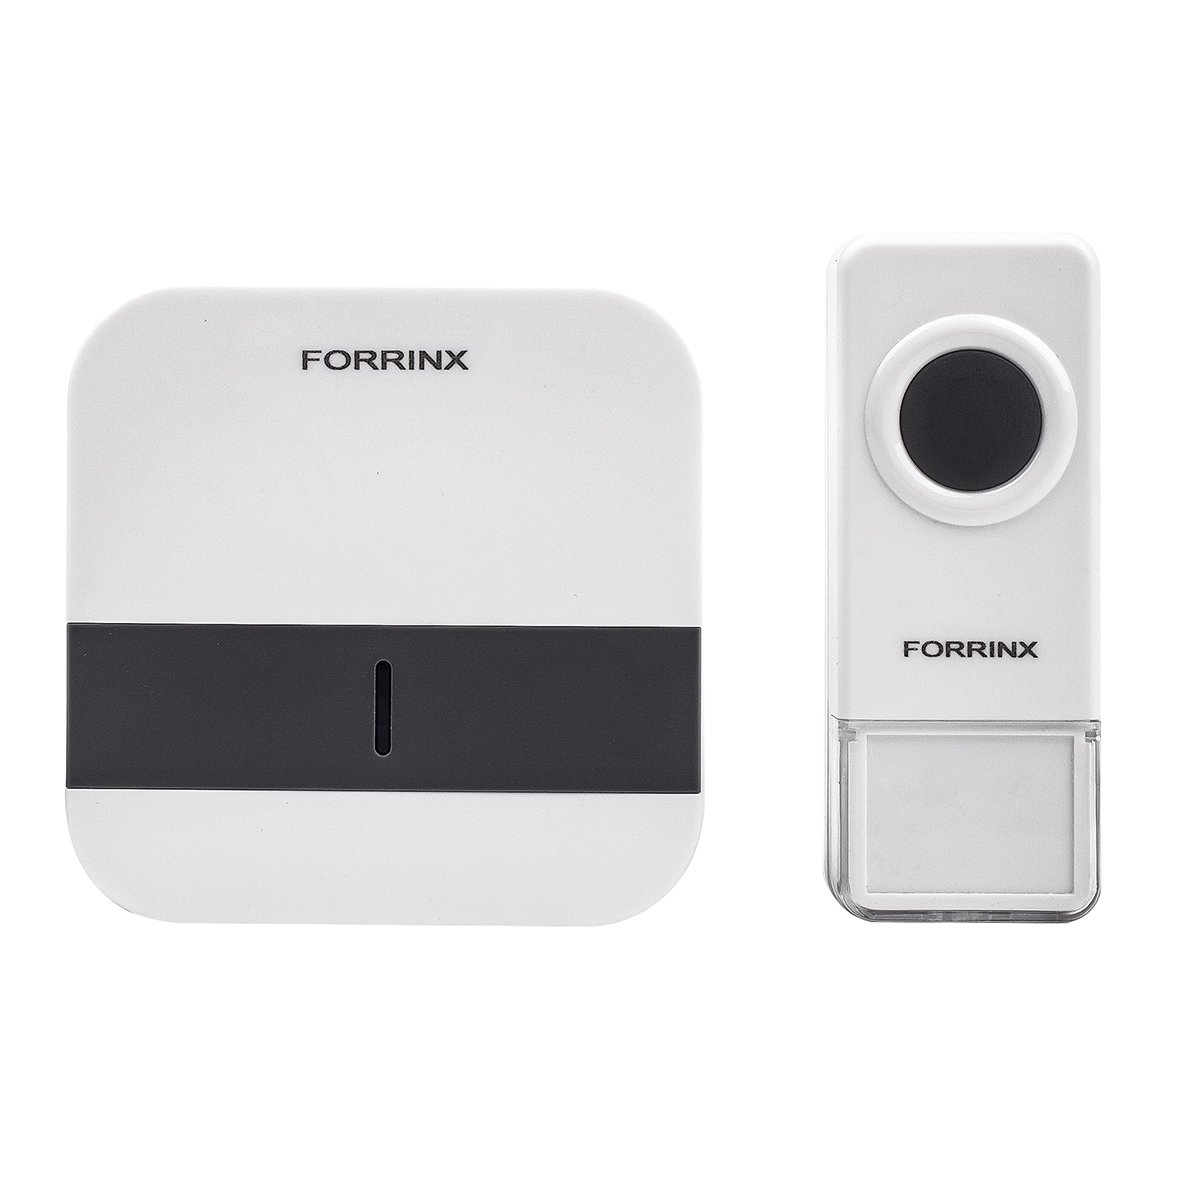 FORRINX Portable Wireless Doorbell Kit with IP44 Waterproof Transmitter and with 52Chimes Fireproof Receiver, No Batteries Required for Receiver,Remote Operating Over 900 Feet in Open Air